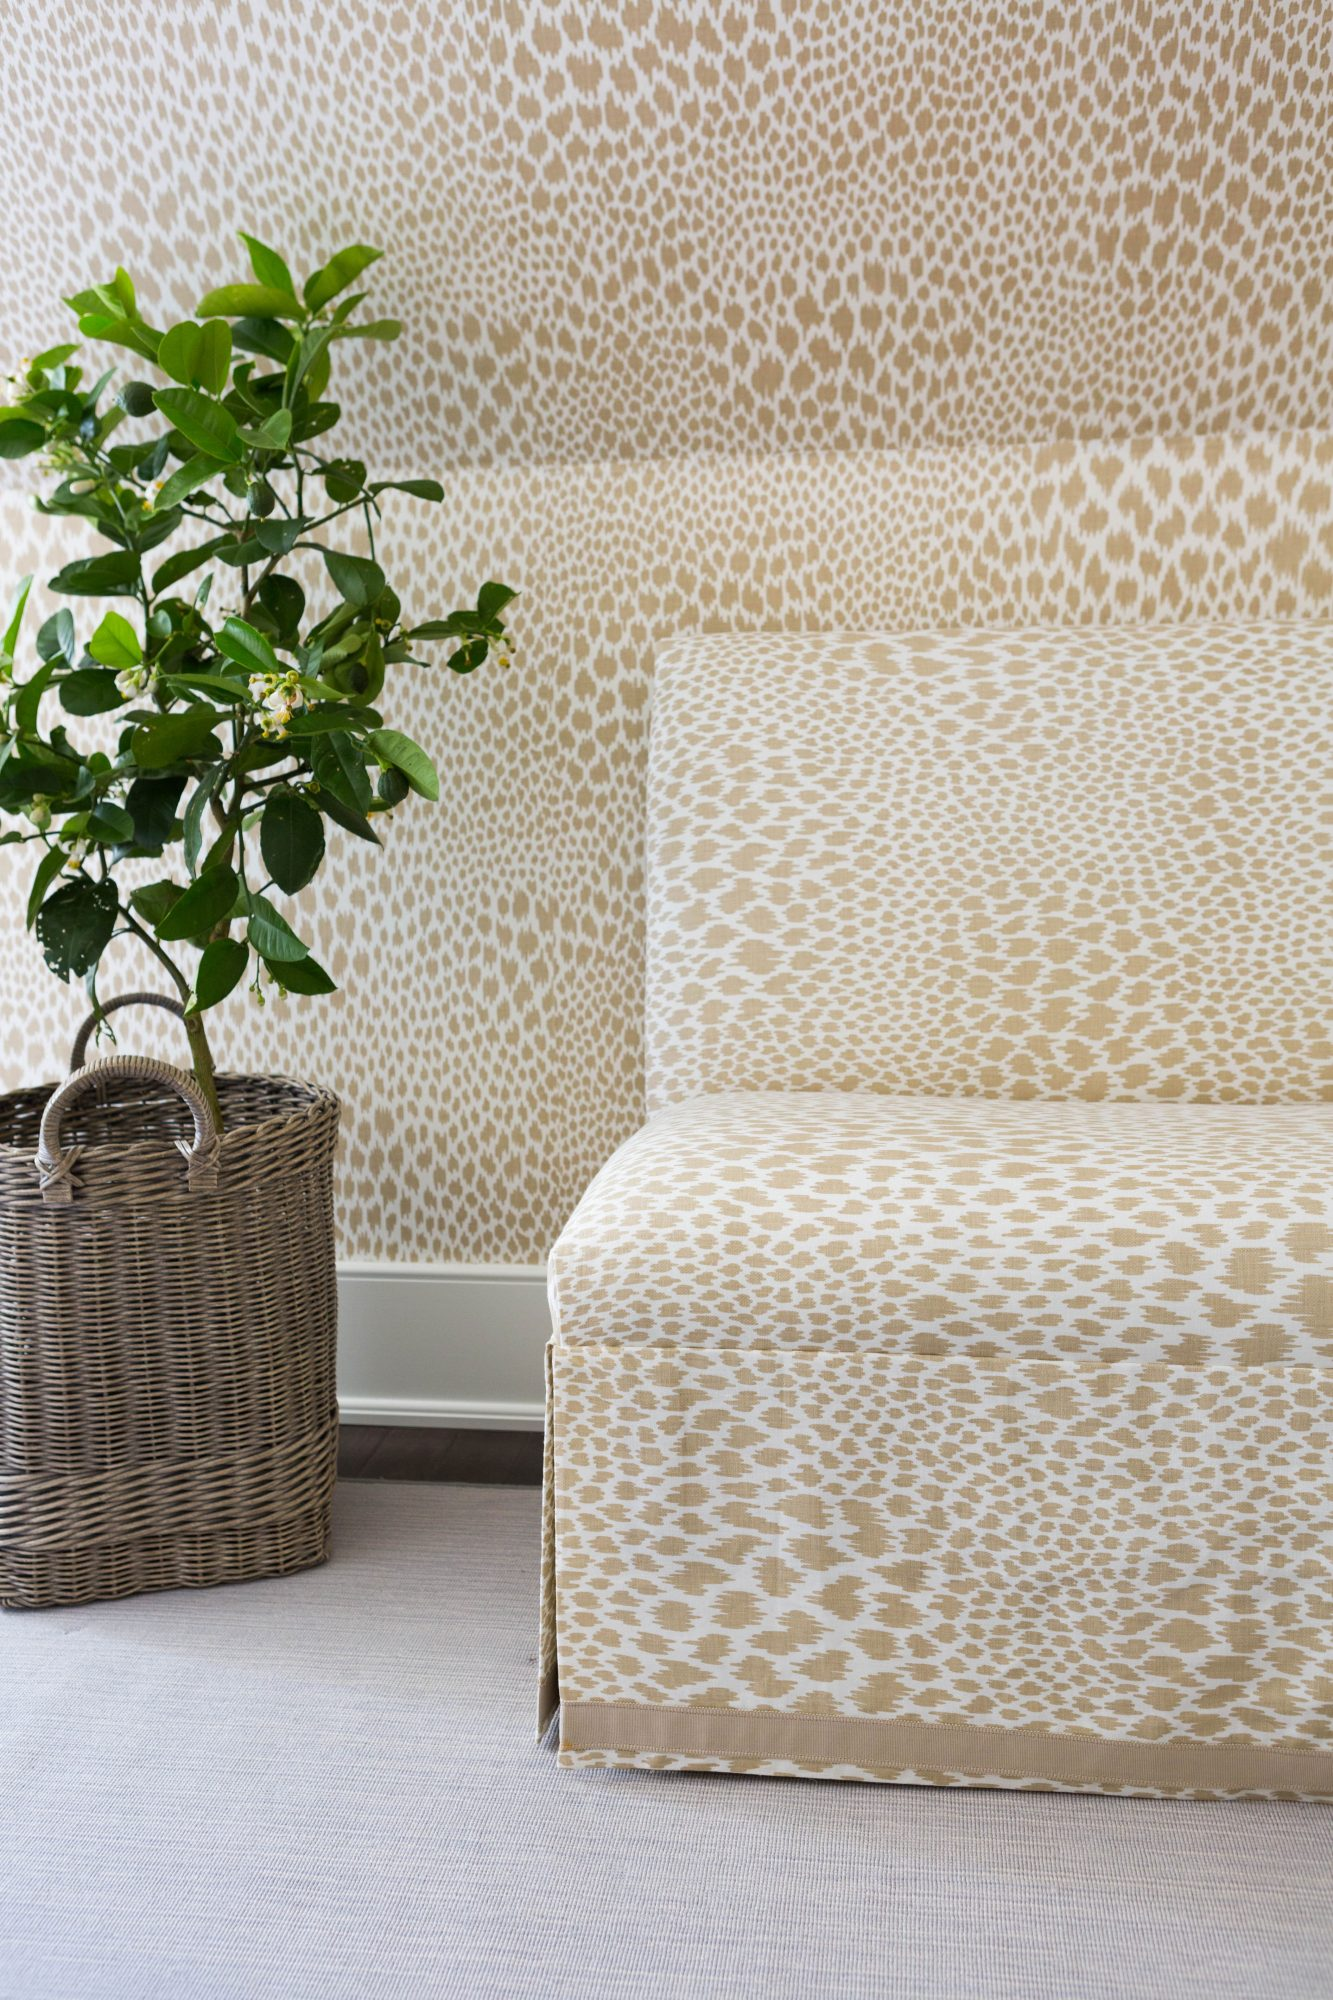 Leopard Print Wall and Couch